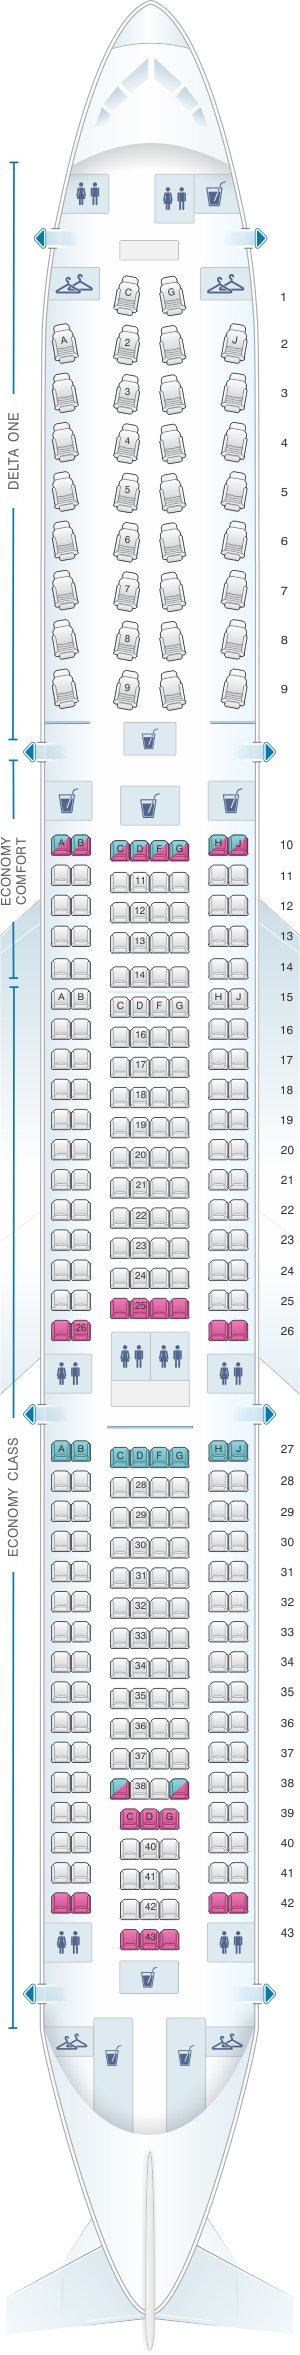 Seat map for Delta Air Lines Airbus A330 300 (333)